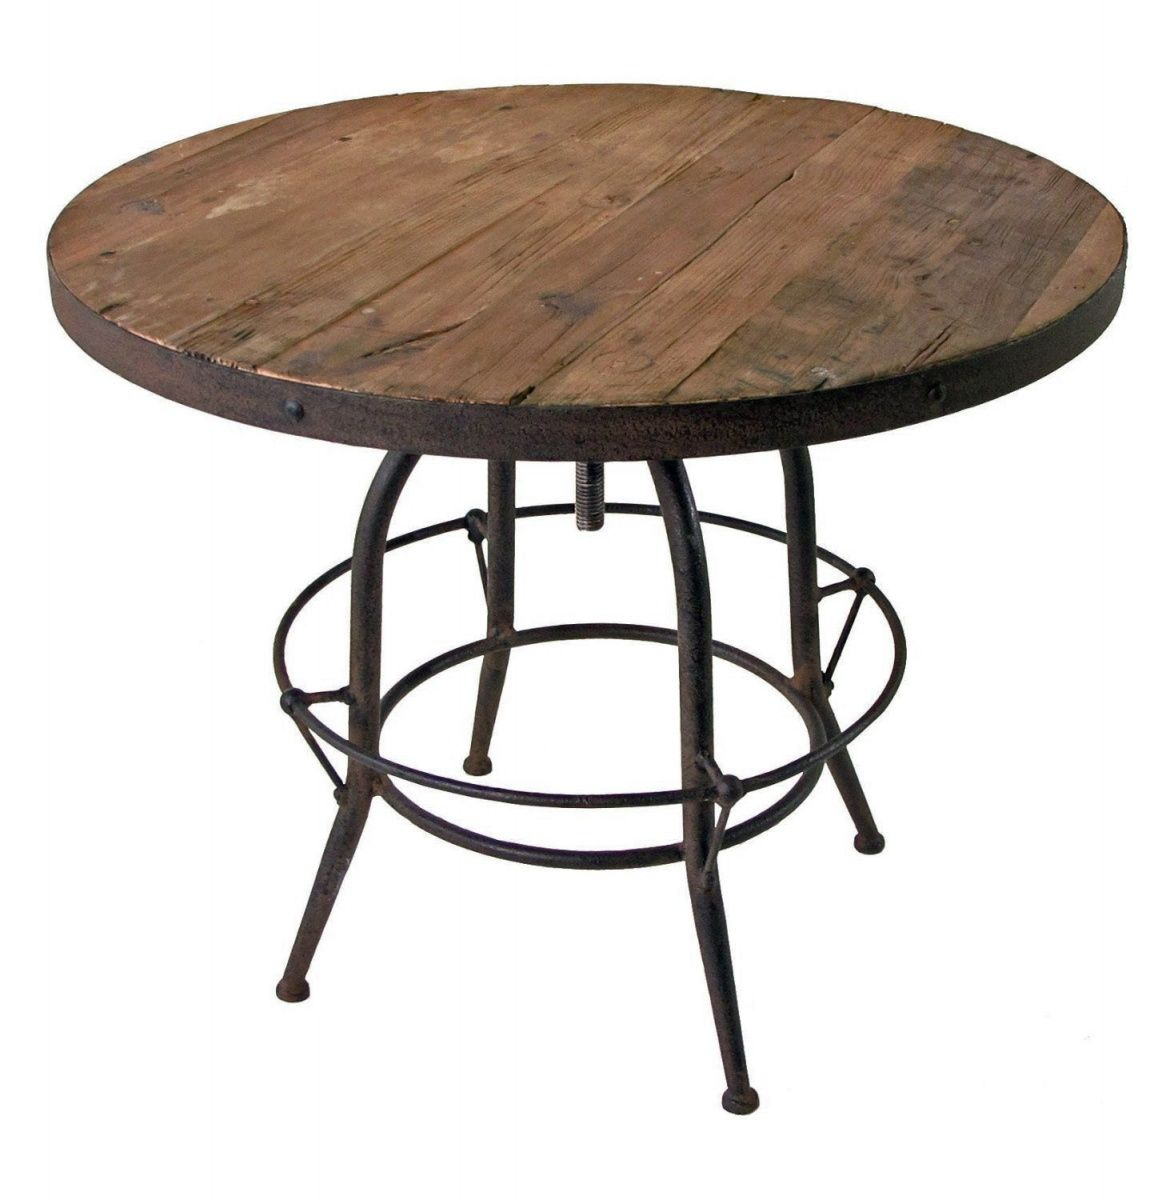 Wrought Iron Table Legs Home Depot Looks Superb In High Sophisticated  Design. Description From Wholehomefurniture